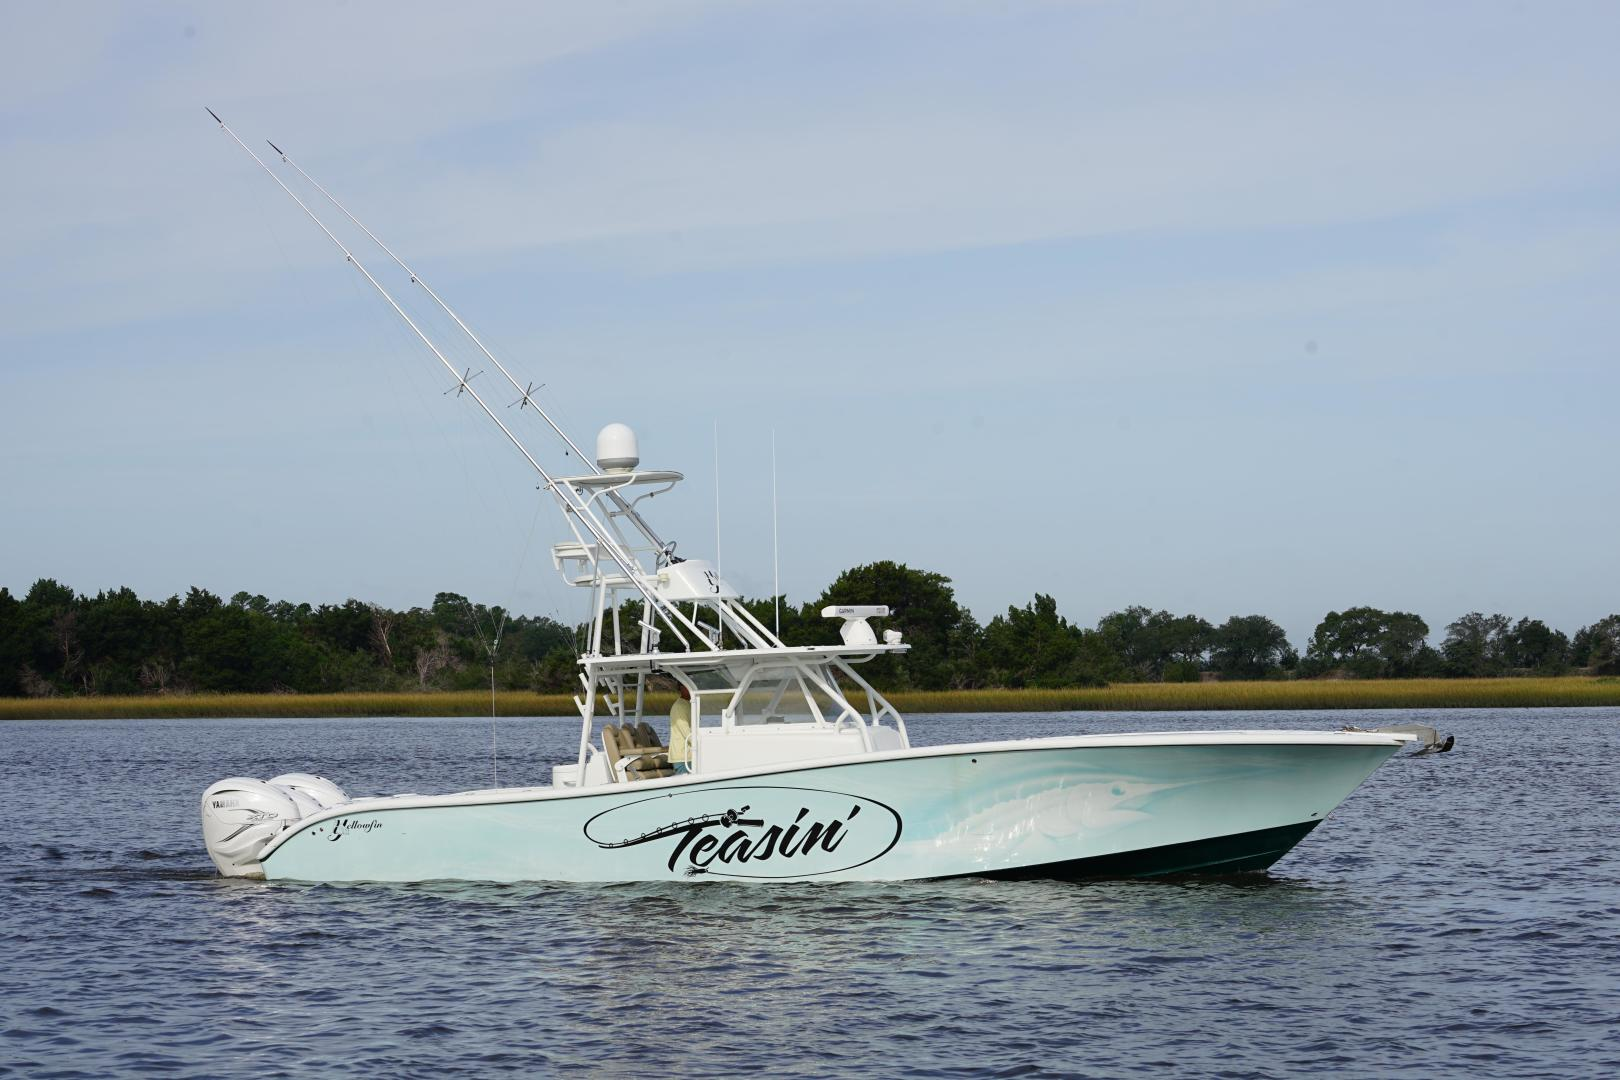 Yellowfin-Center Console 2014-Teasin Charleston-South Carolina-United States-1536586 | Thumbnail